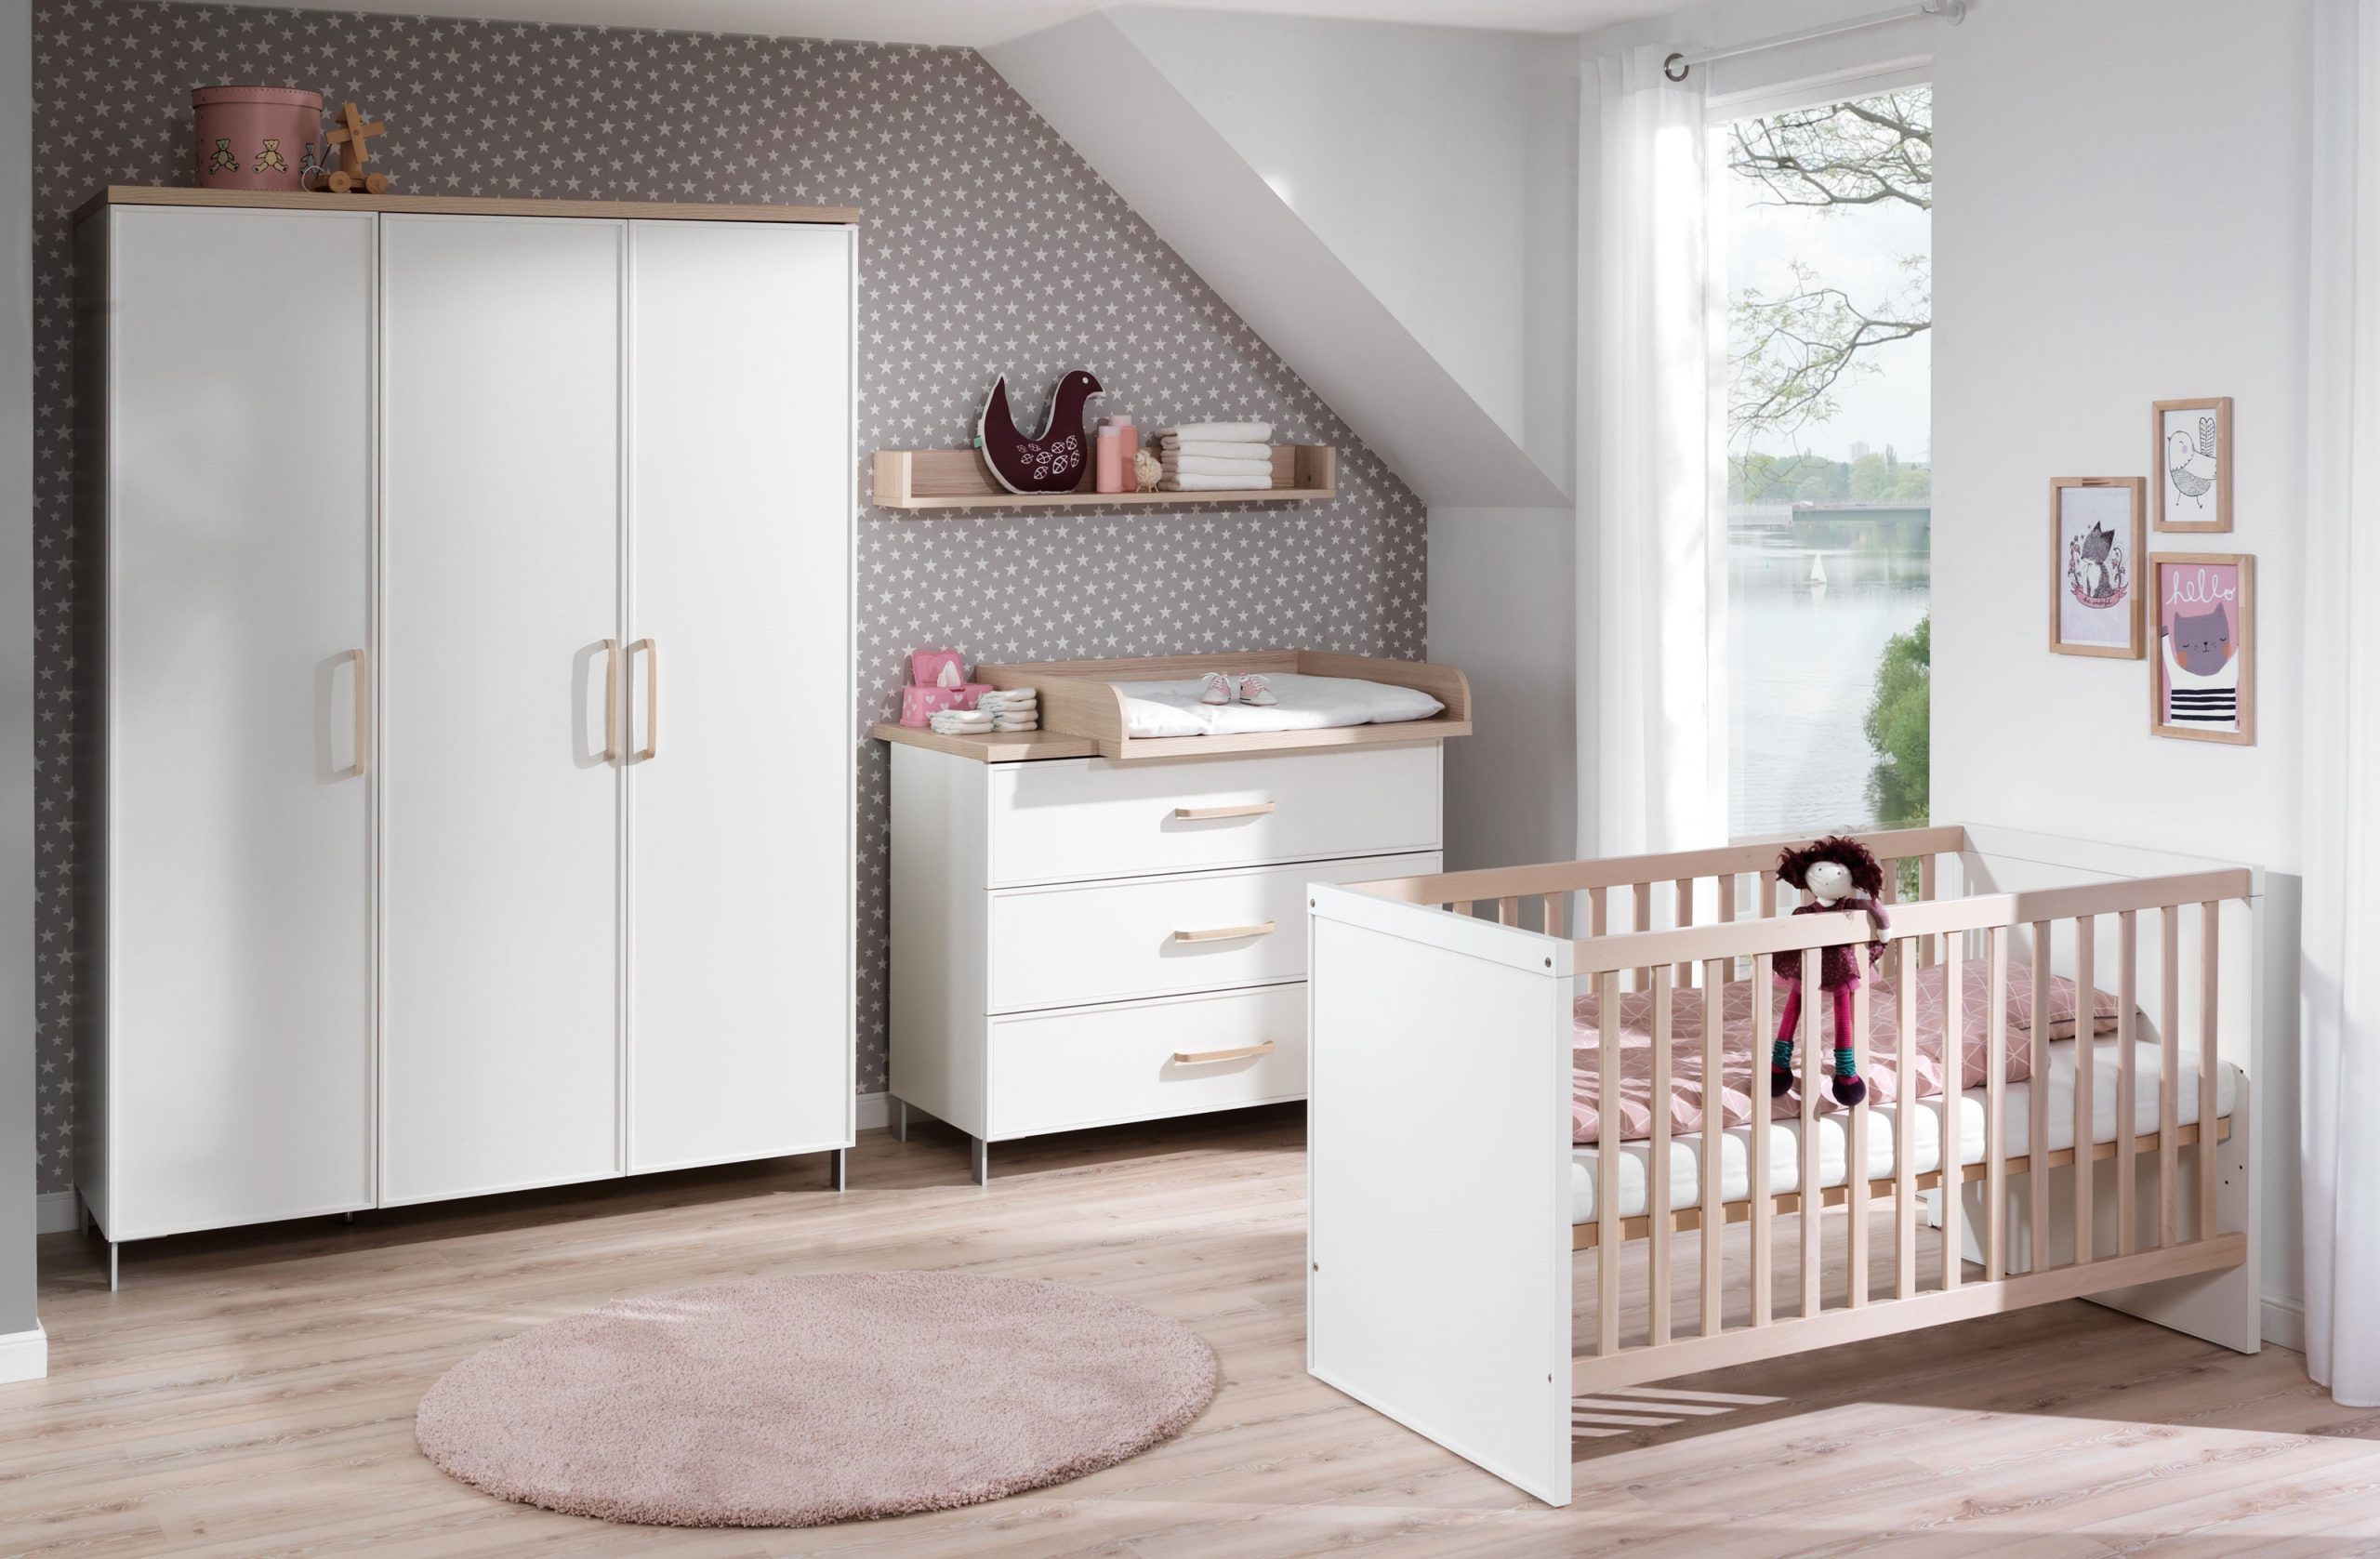 Babyzimmer Komplett Online How To Leave Babyzimmer Komplett Online Without Being Noticed In 2021 Bedroom Design Home Home Decor